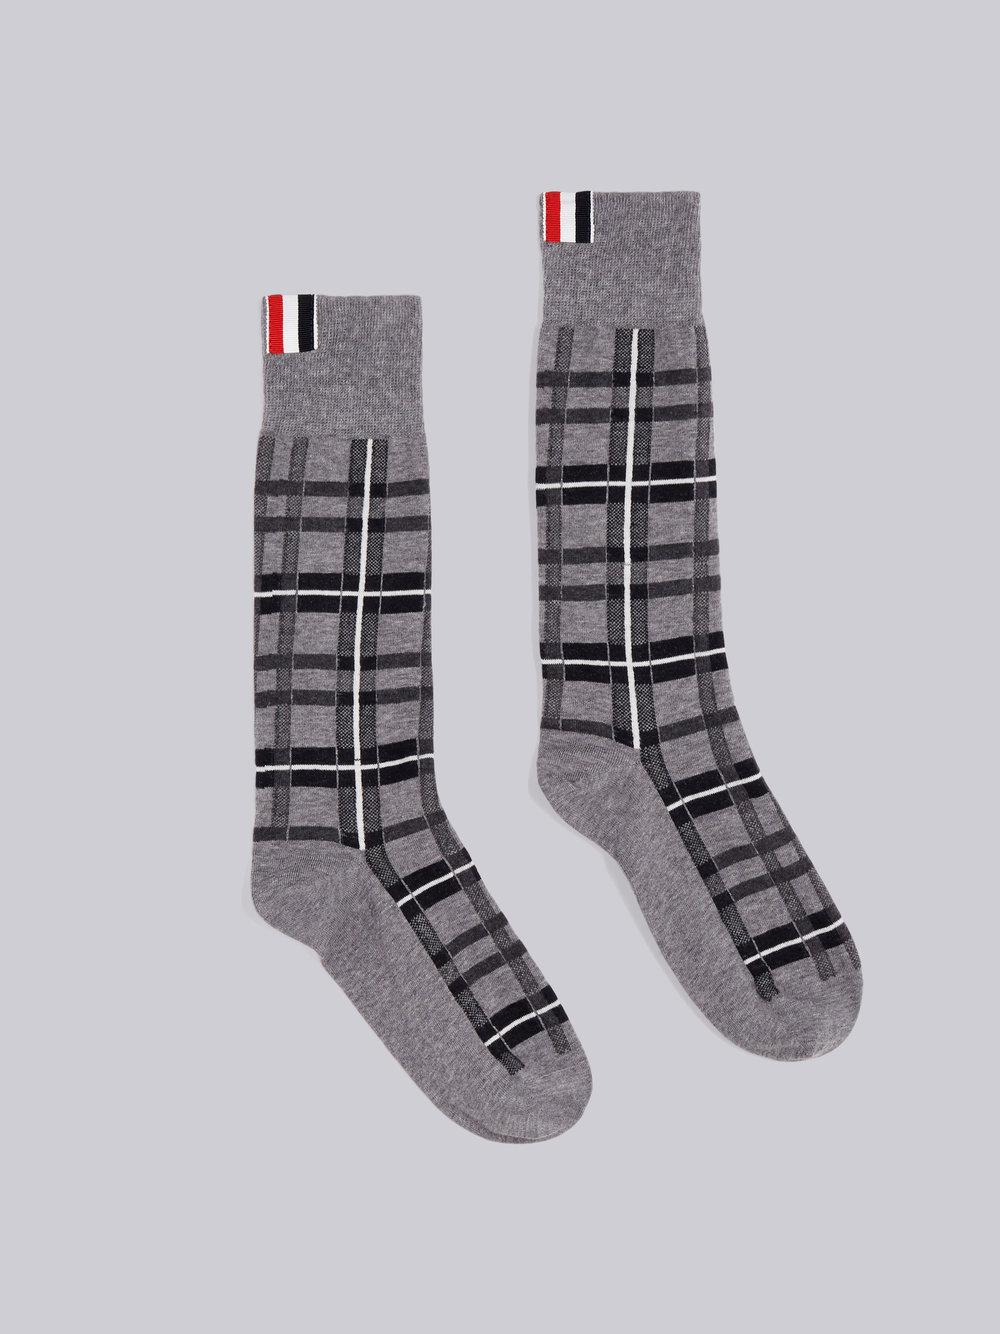 Free Shipping High Quality Thom Browne Thom Browne Tartan Jacquard Socks Footaction Cheap Online Sale Outlet xHVgWzr5Q